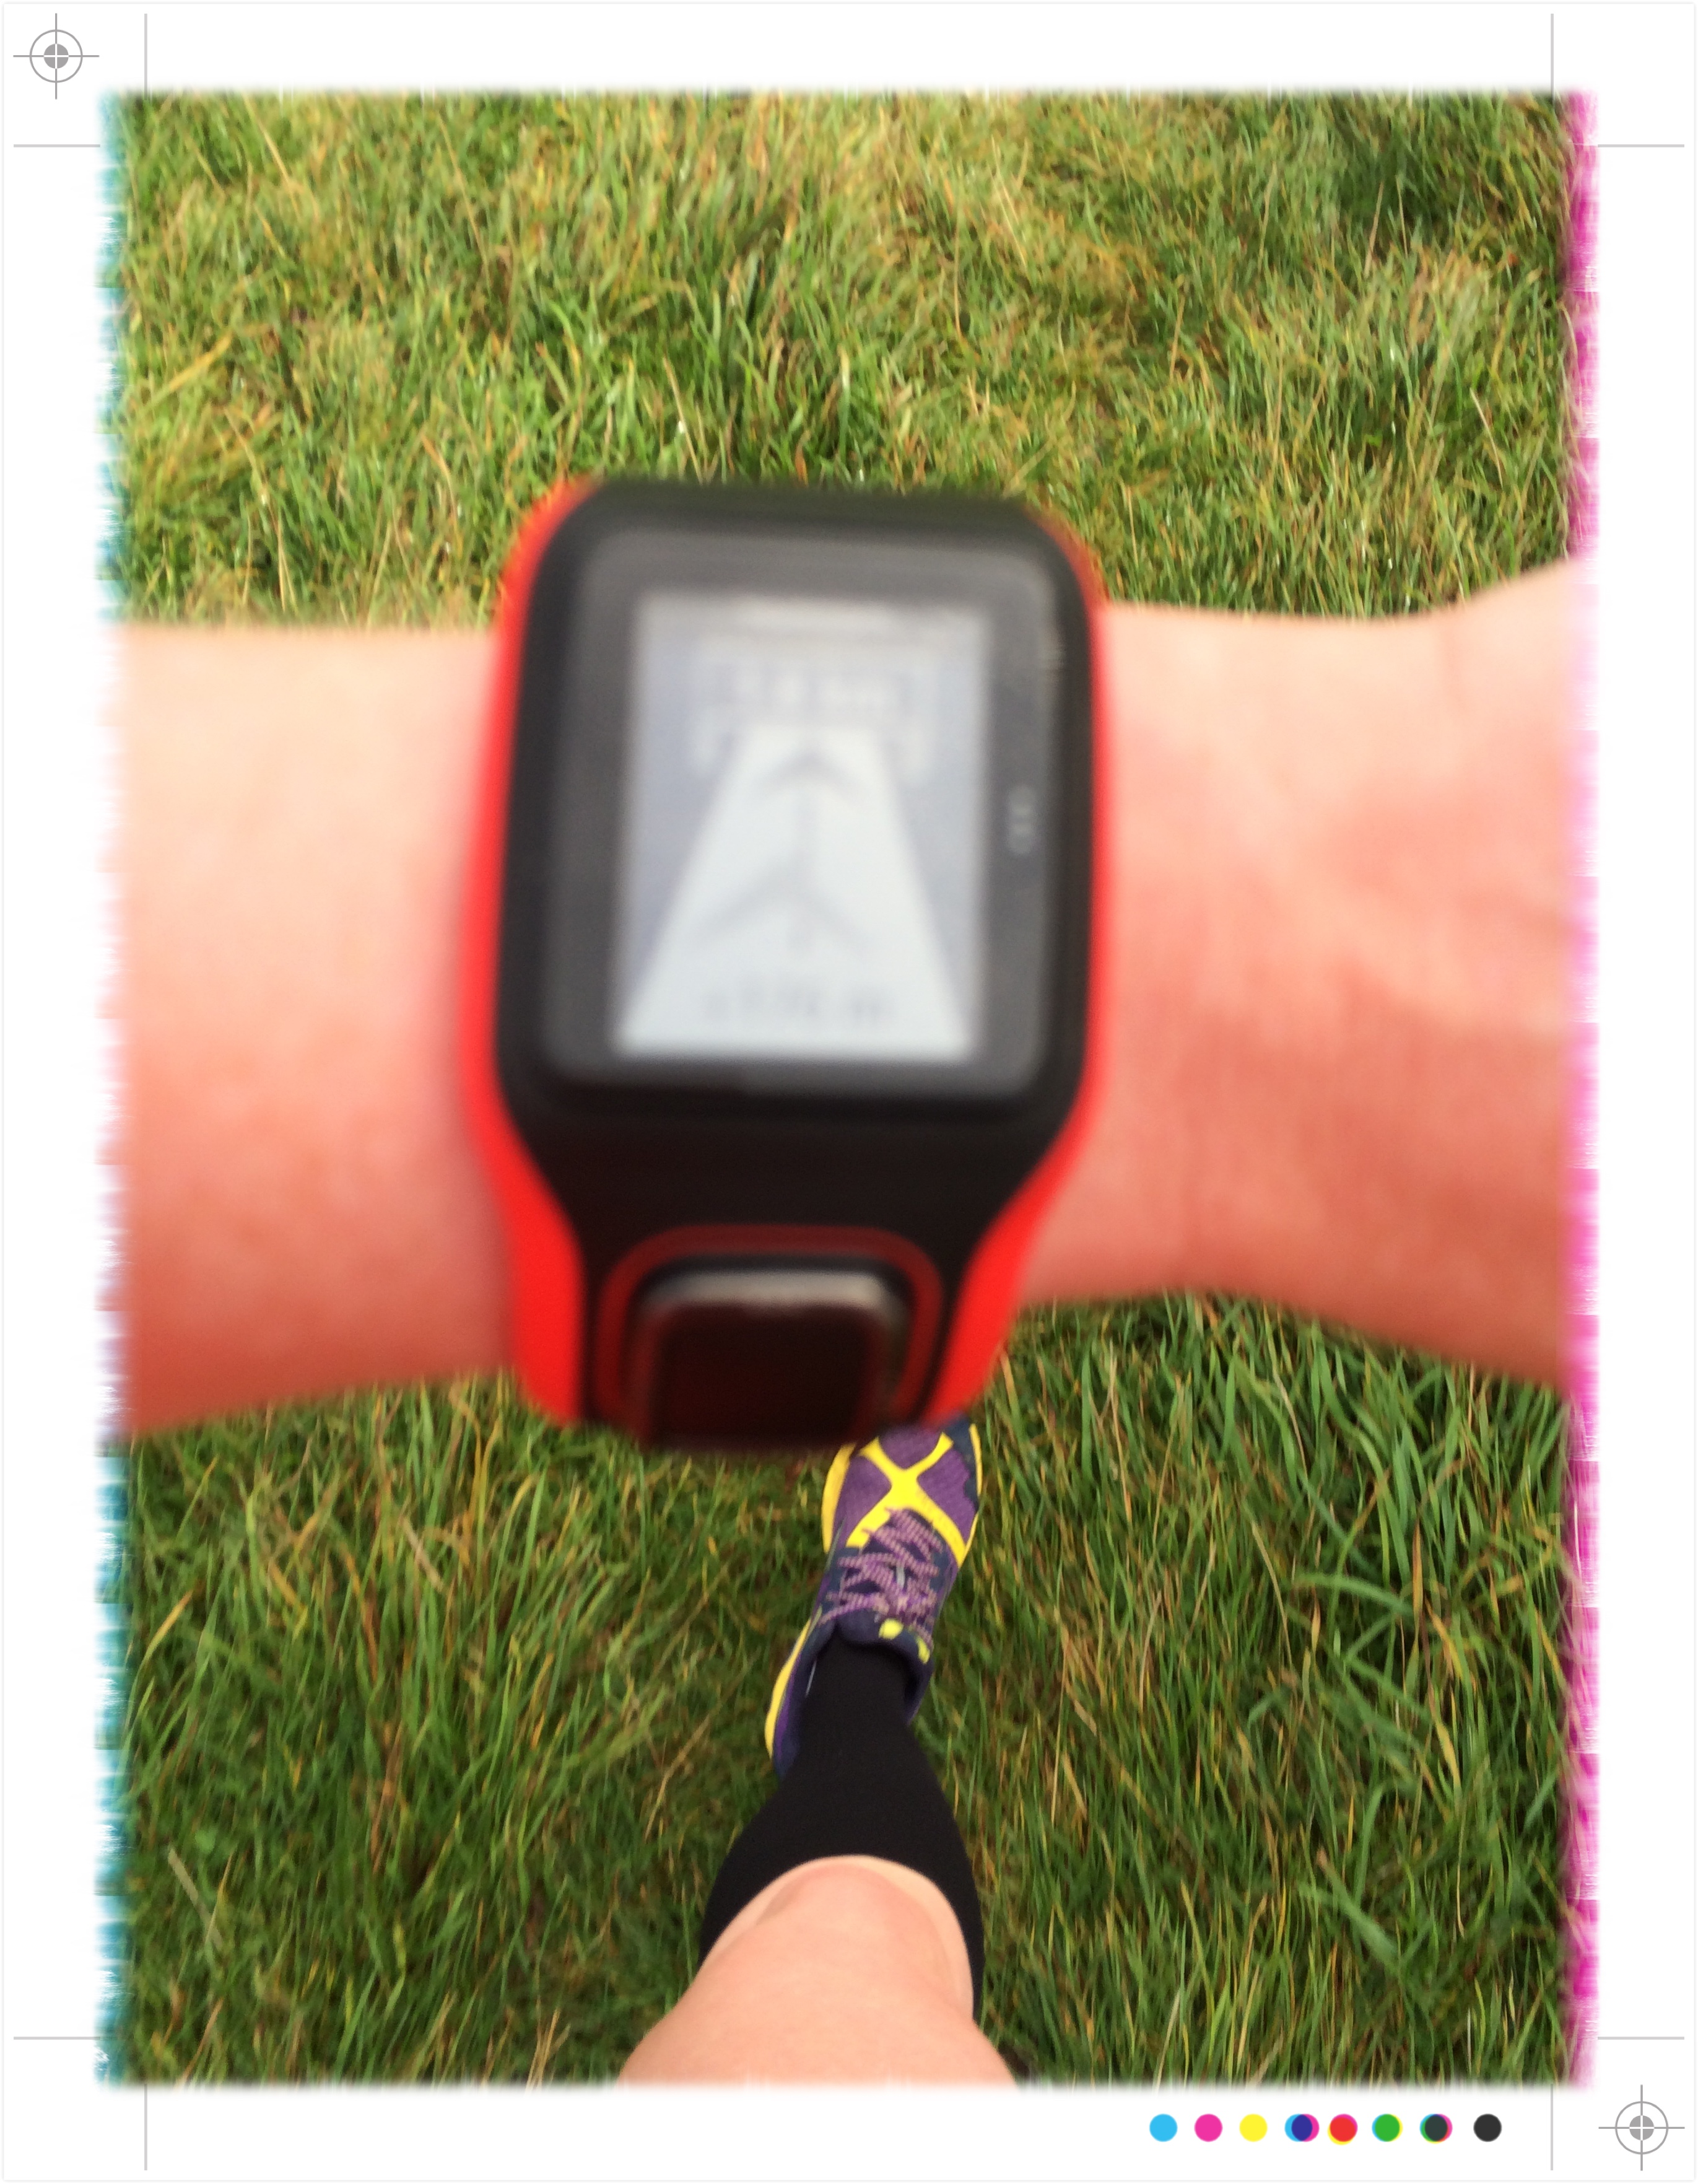 Testing: cool functions on the TomTom Runner Cardio